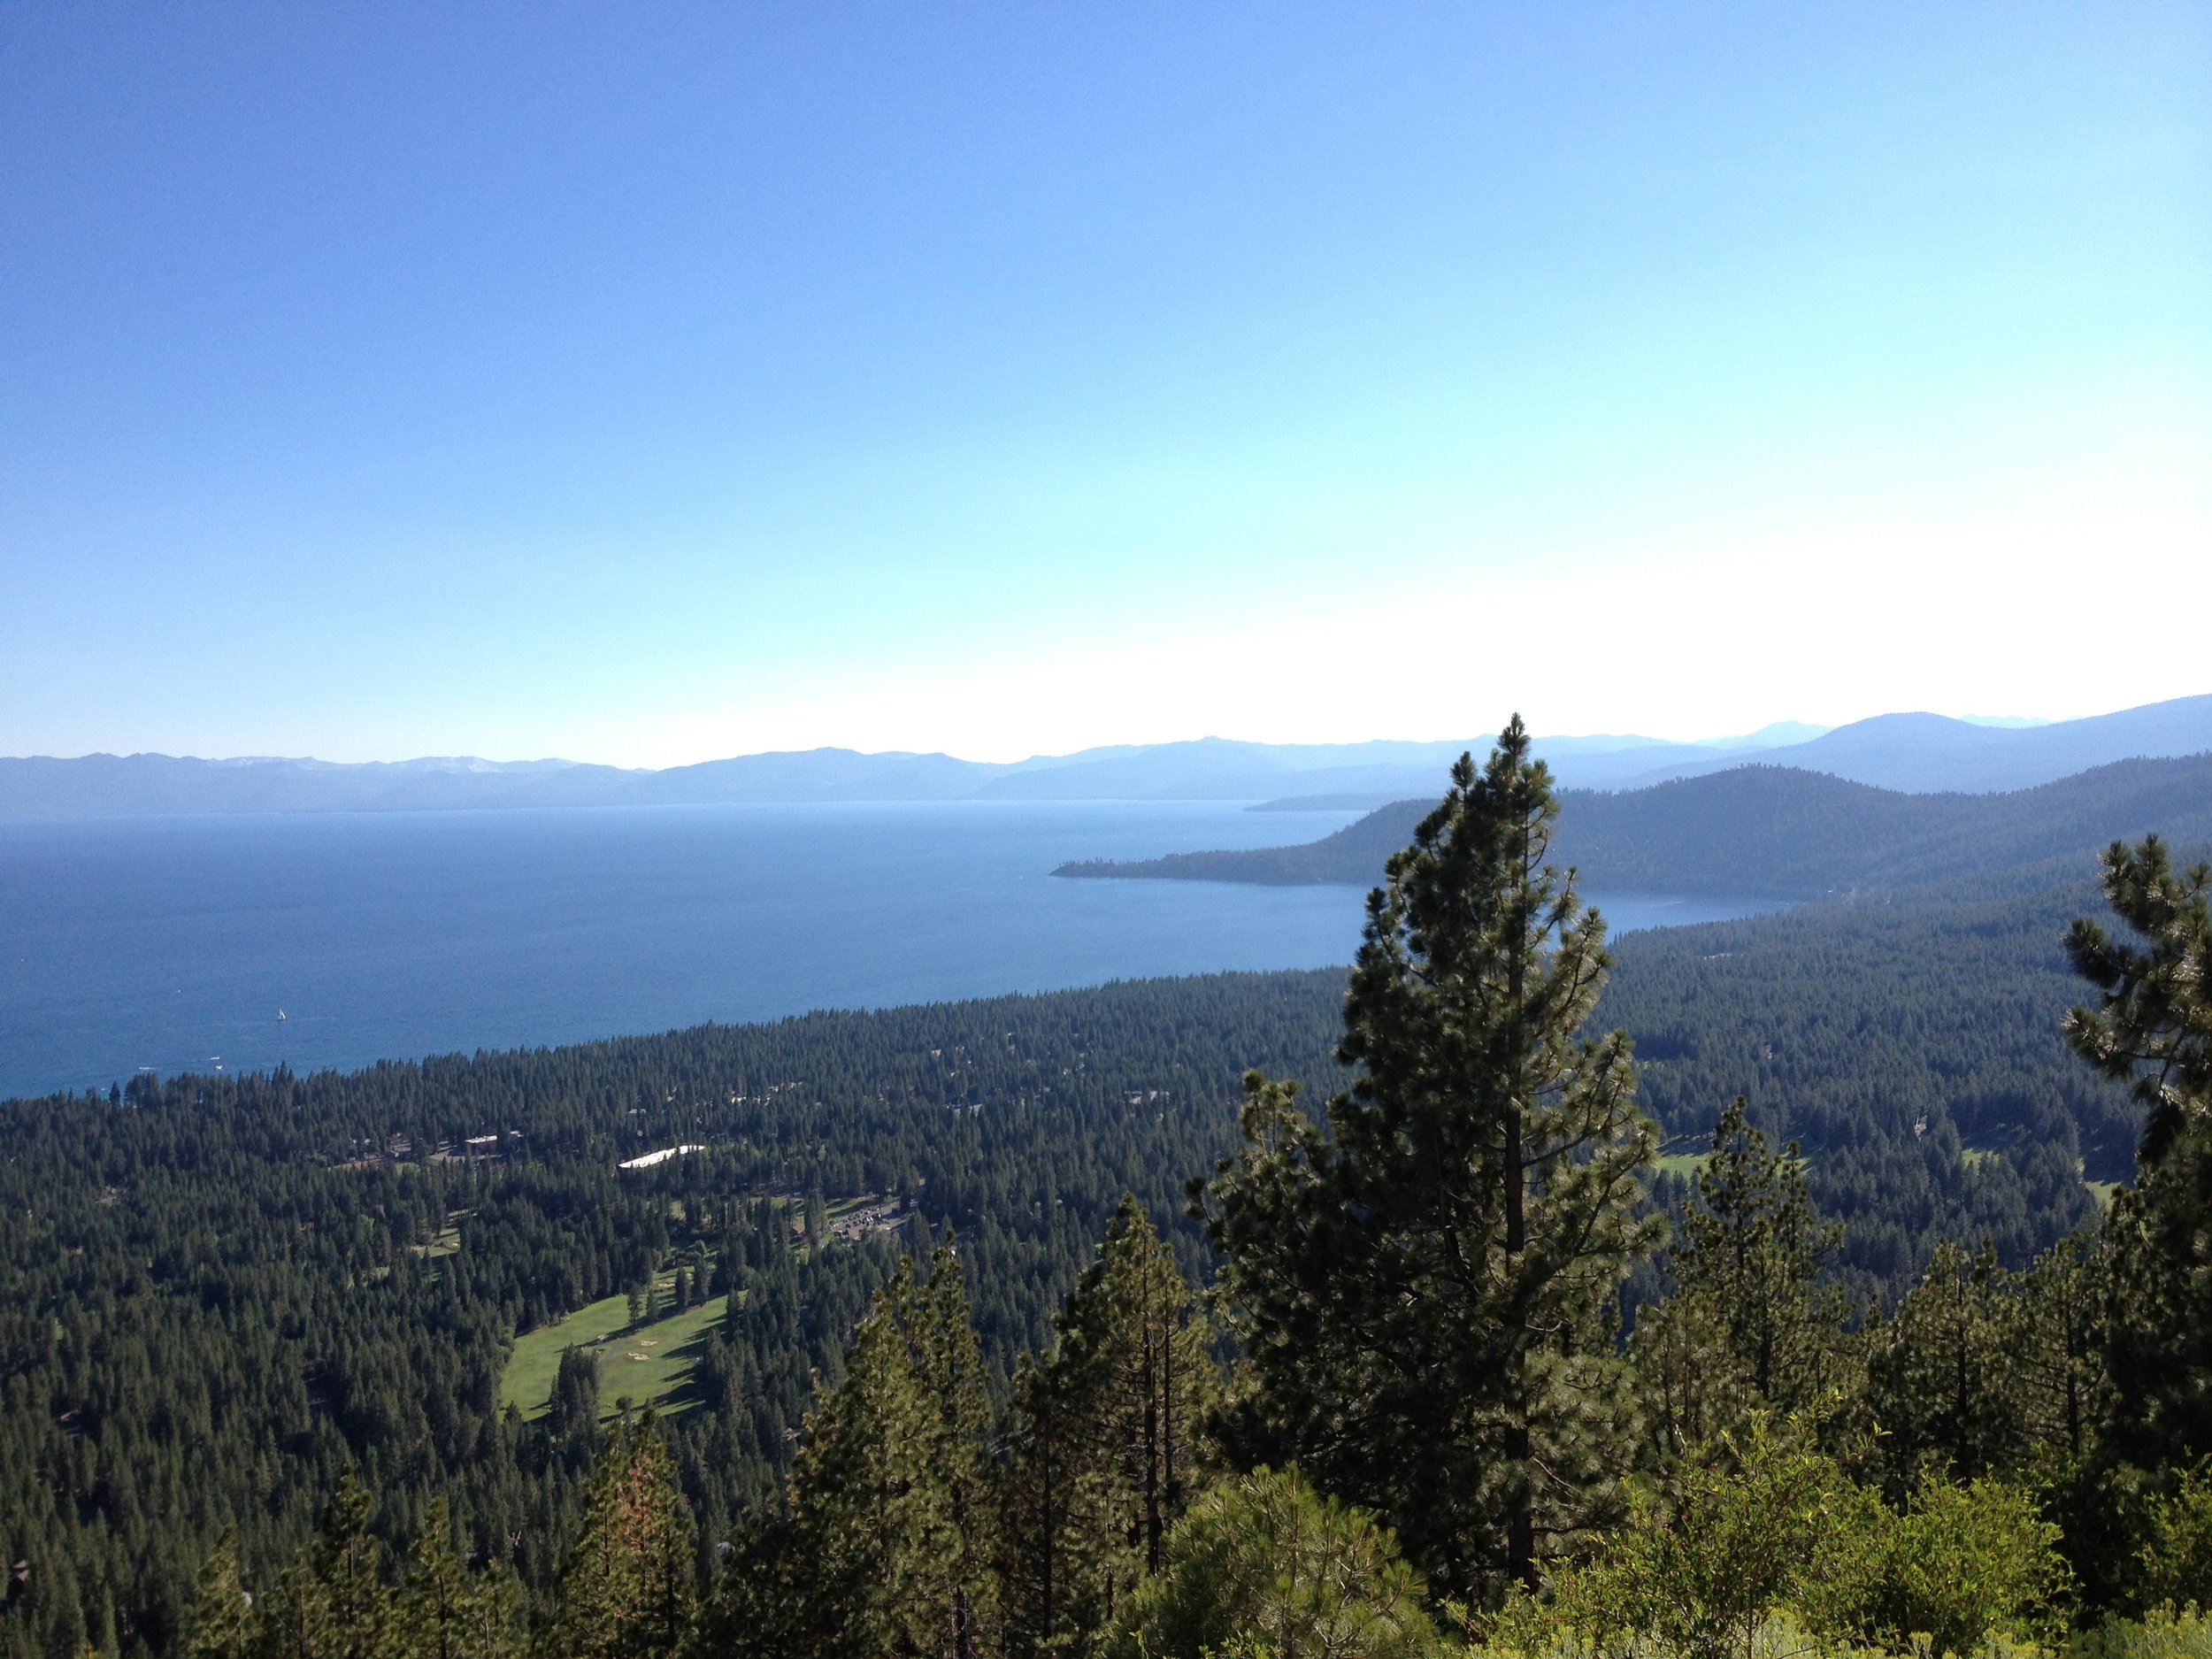 The first photo I ever took of Lake Tahoe, July 2012.